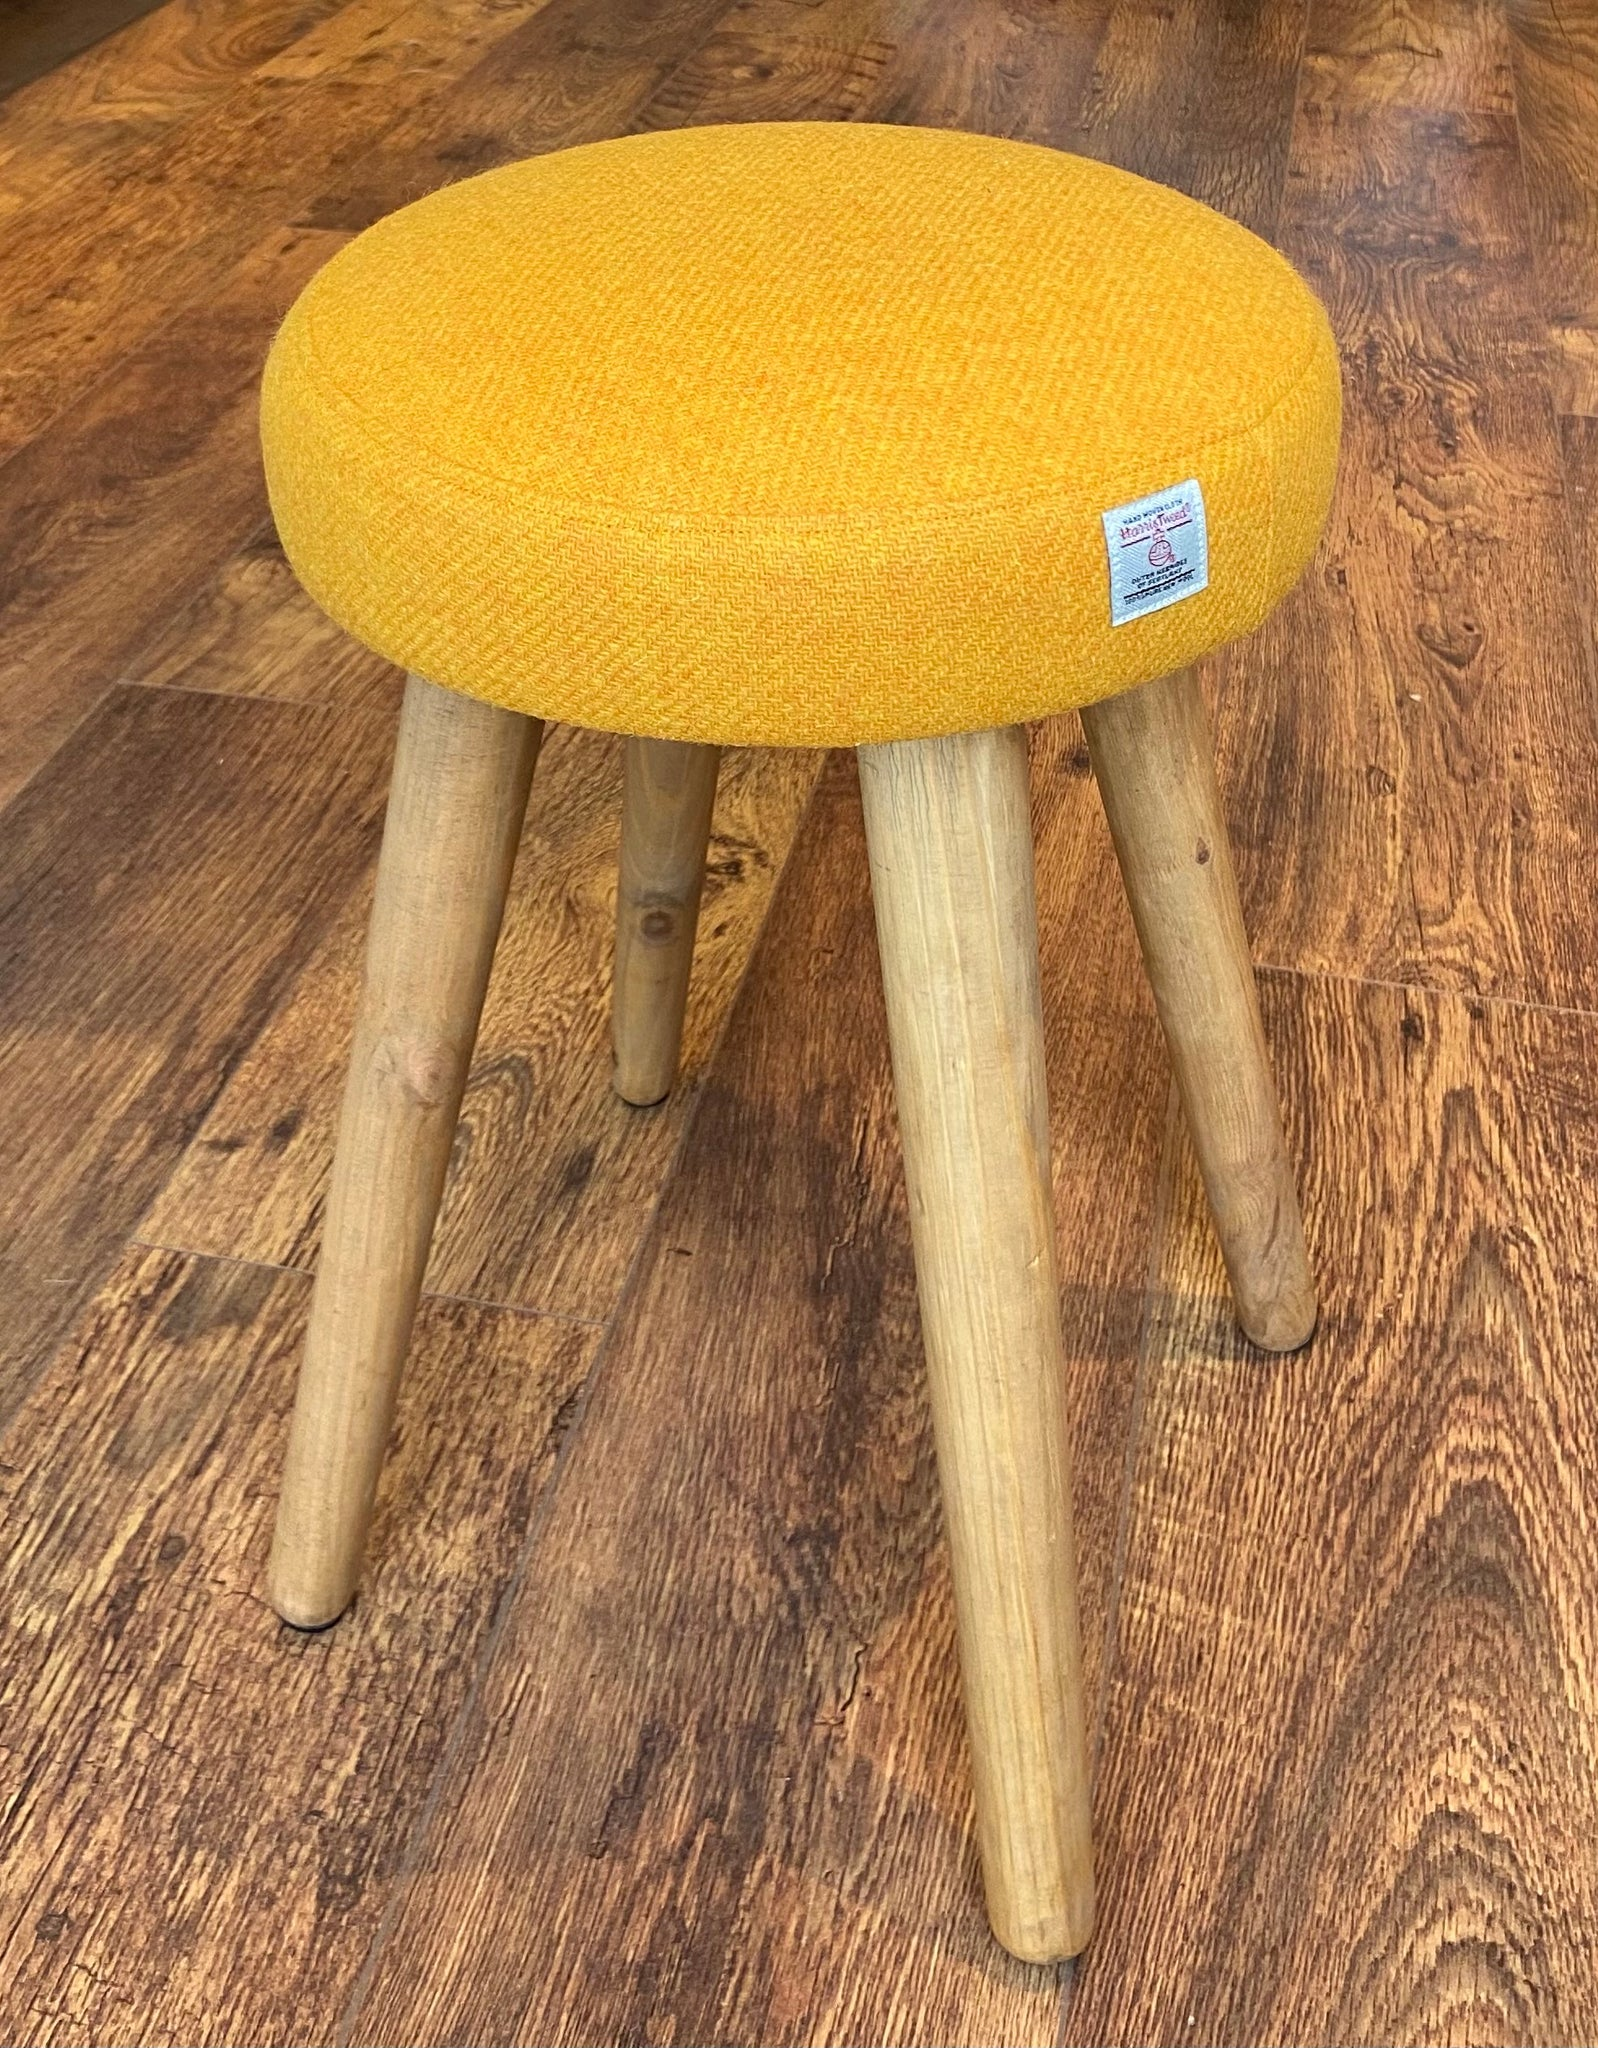 Yellow Harris Tweed Dressing Table Stool with Rustic Wooden Legs